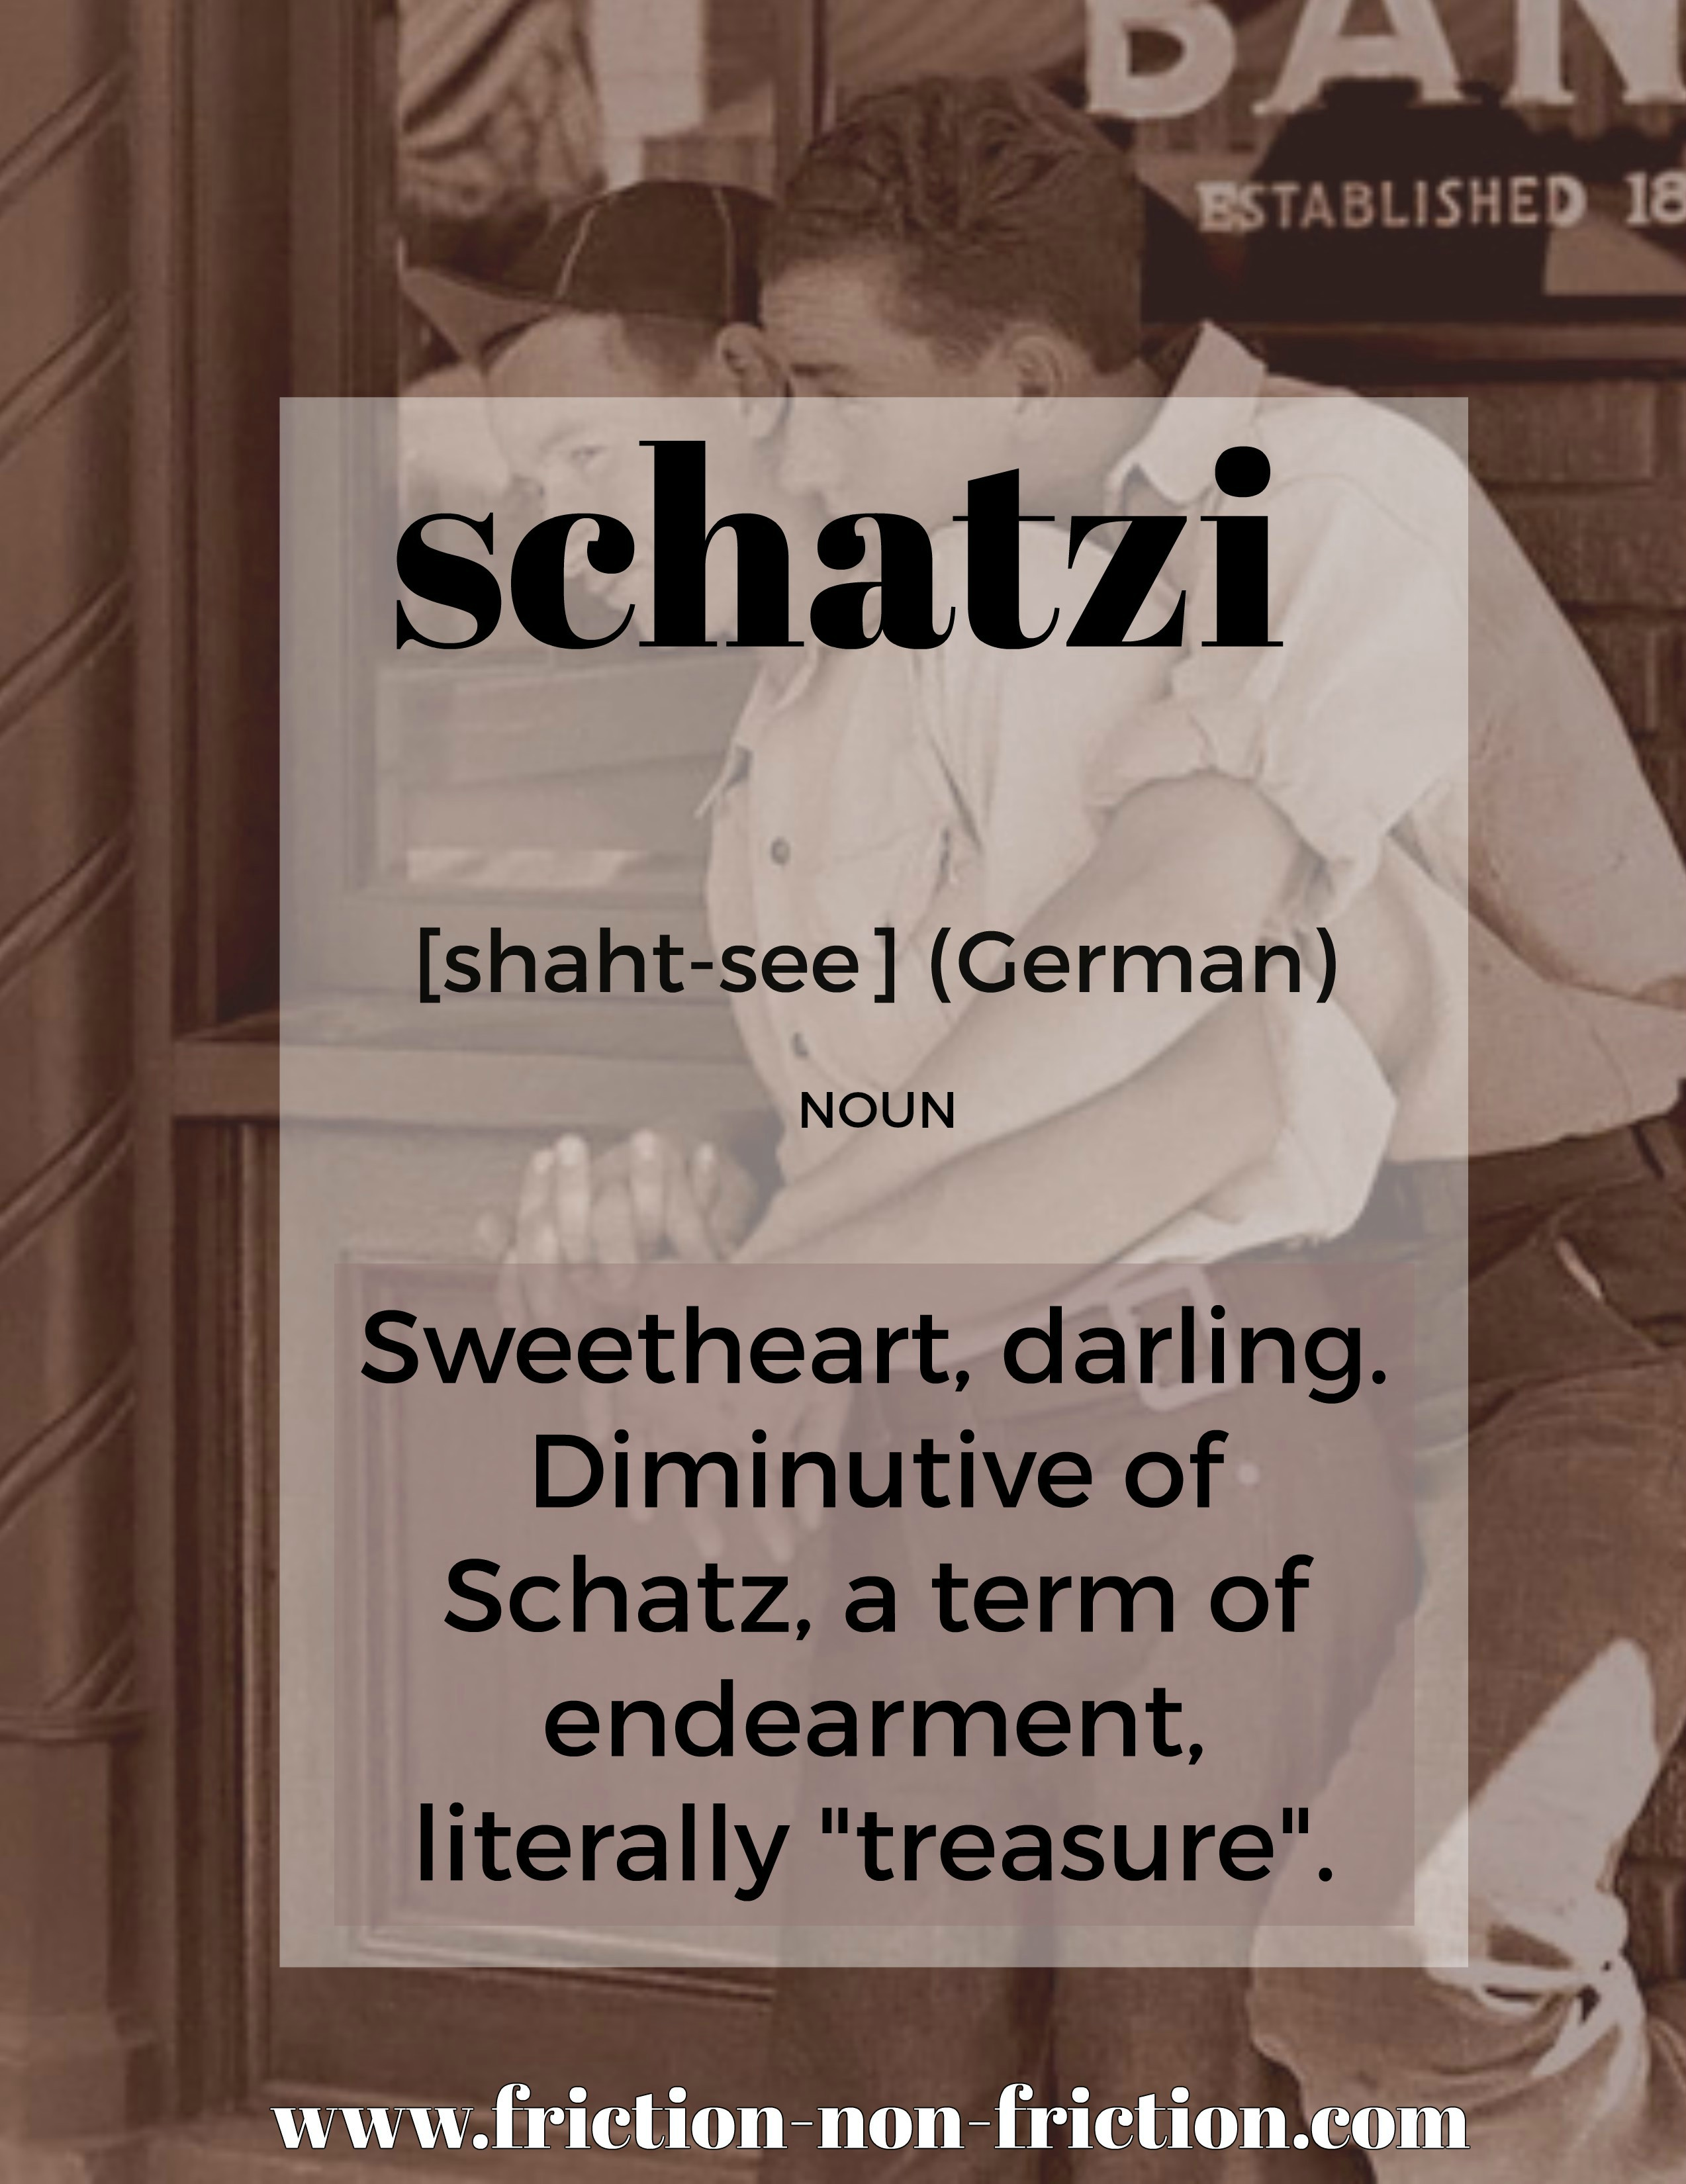 Schatzi -- another great FRICTIONARY definition from Friction non Friction